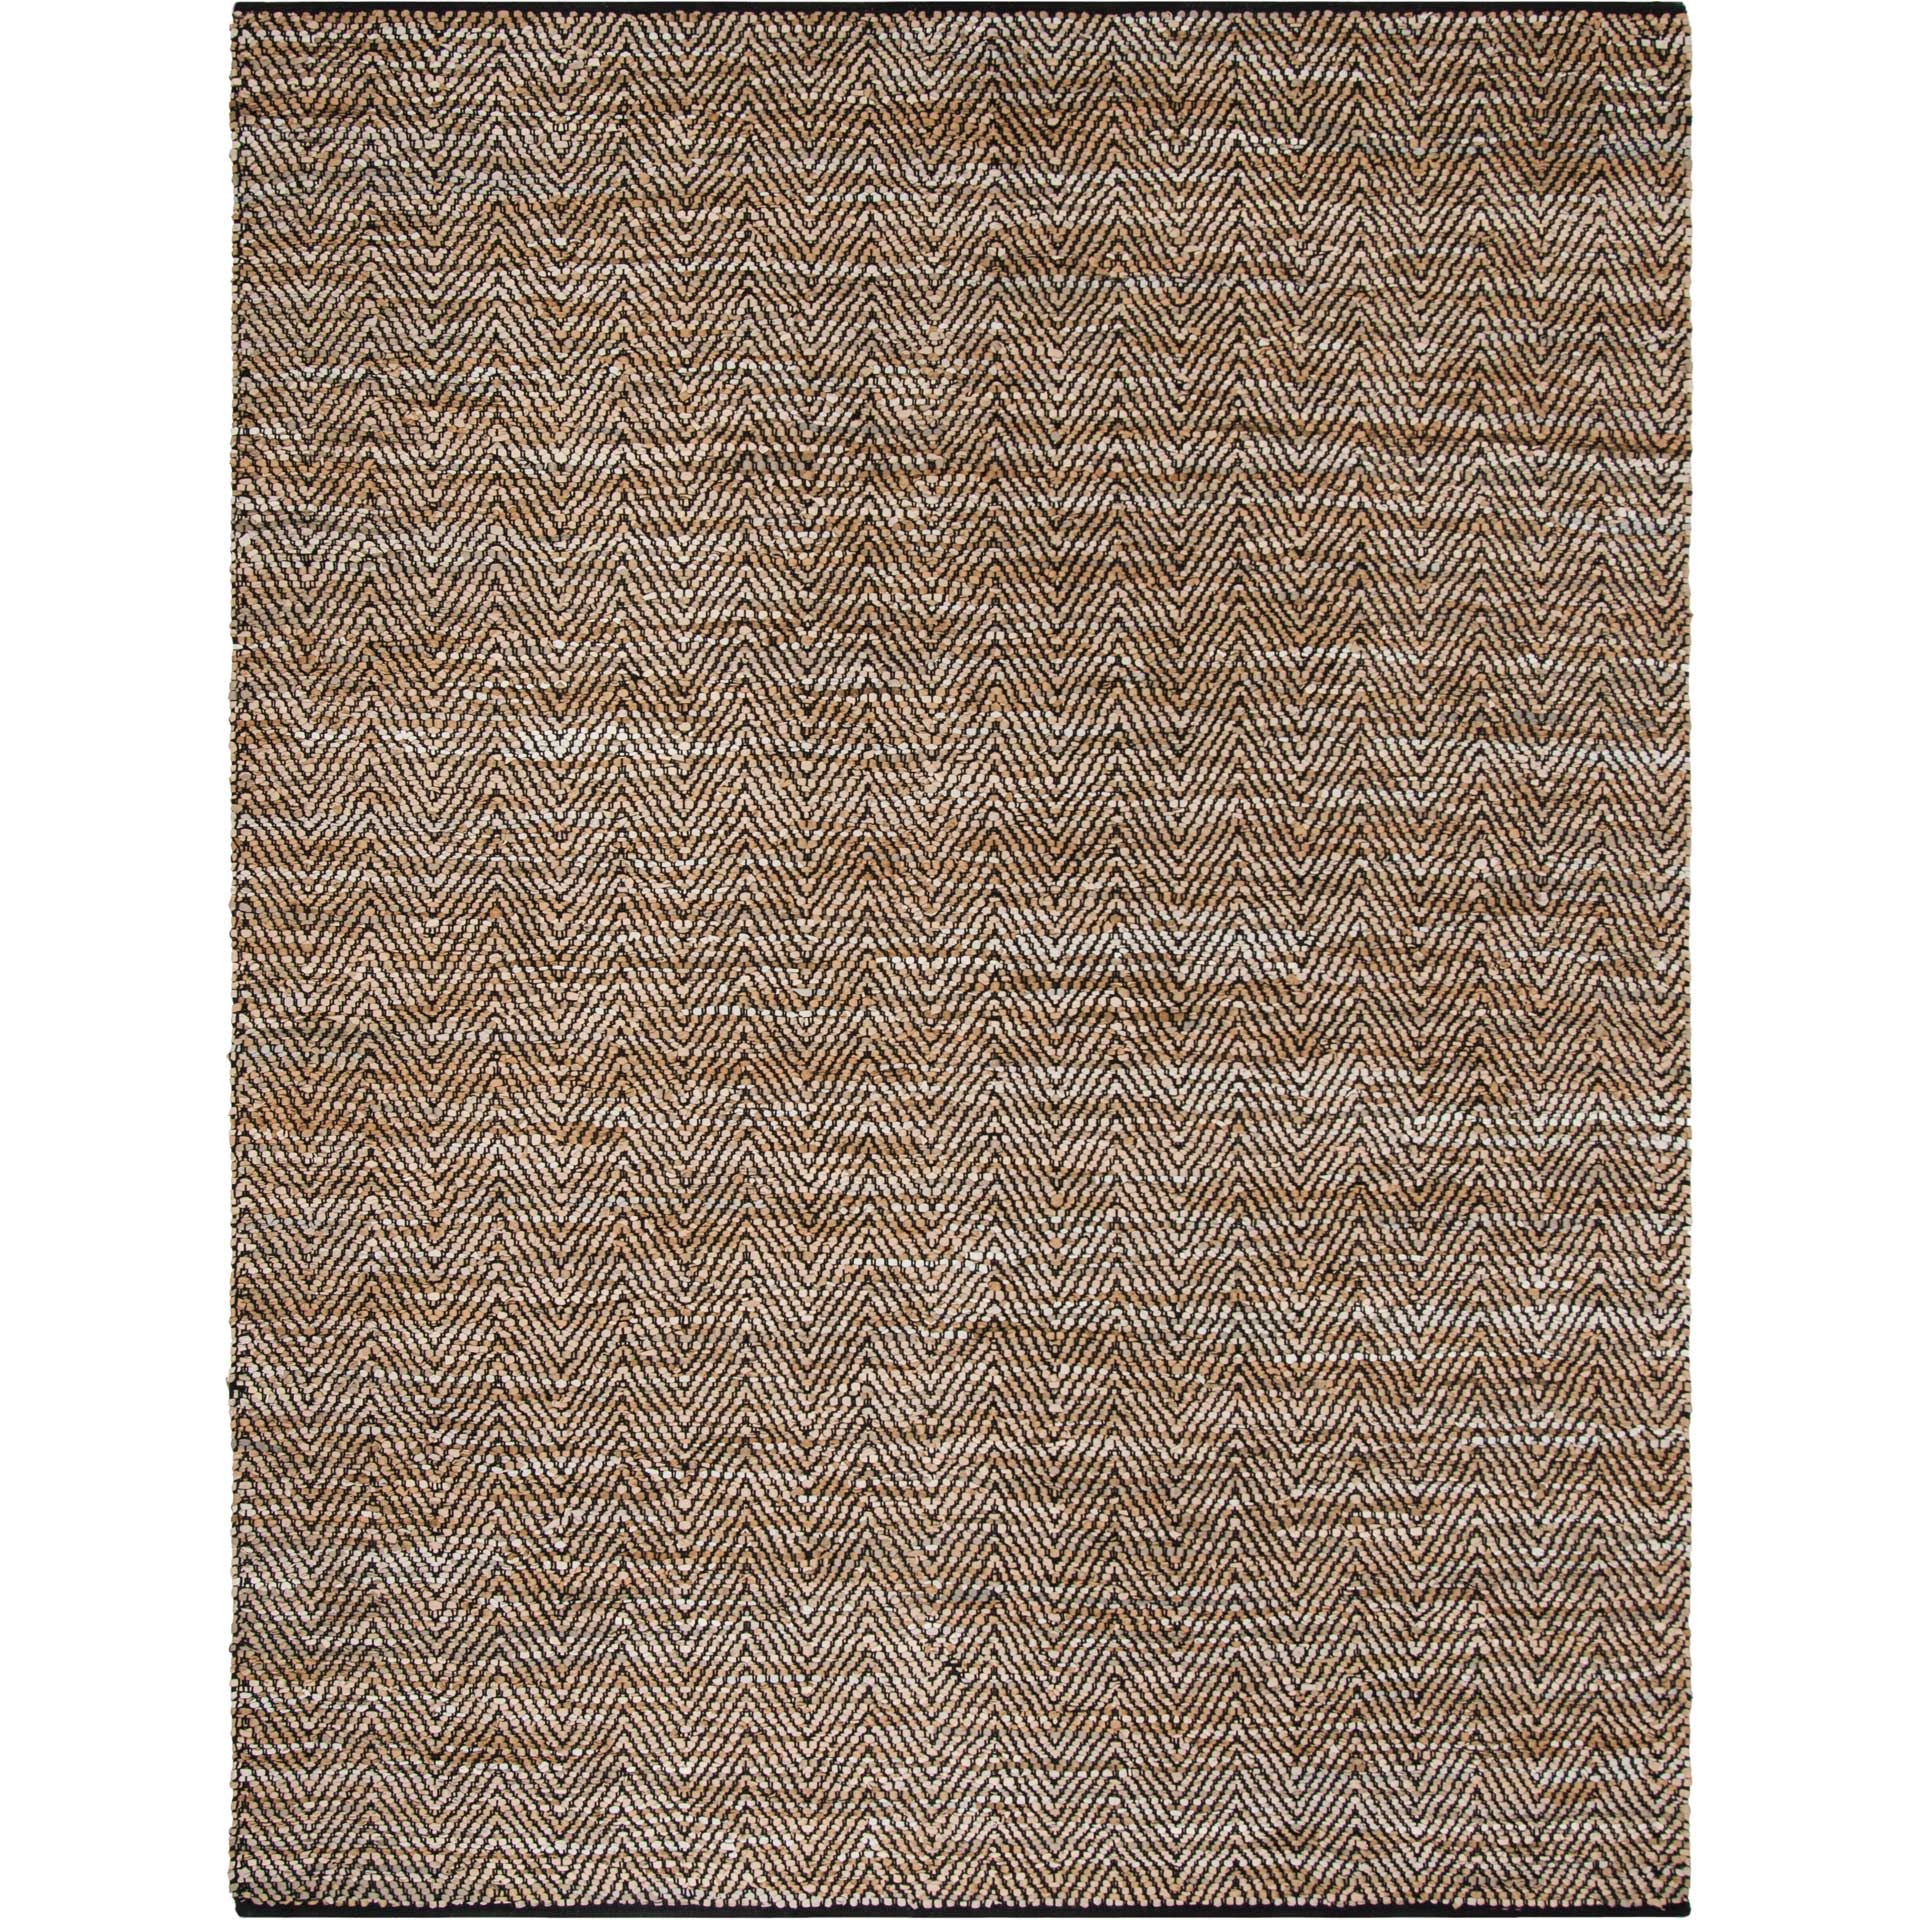 Vintage Leather Chevron Beige/Black Area Rug